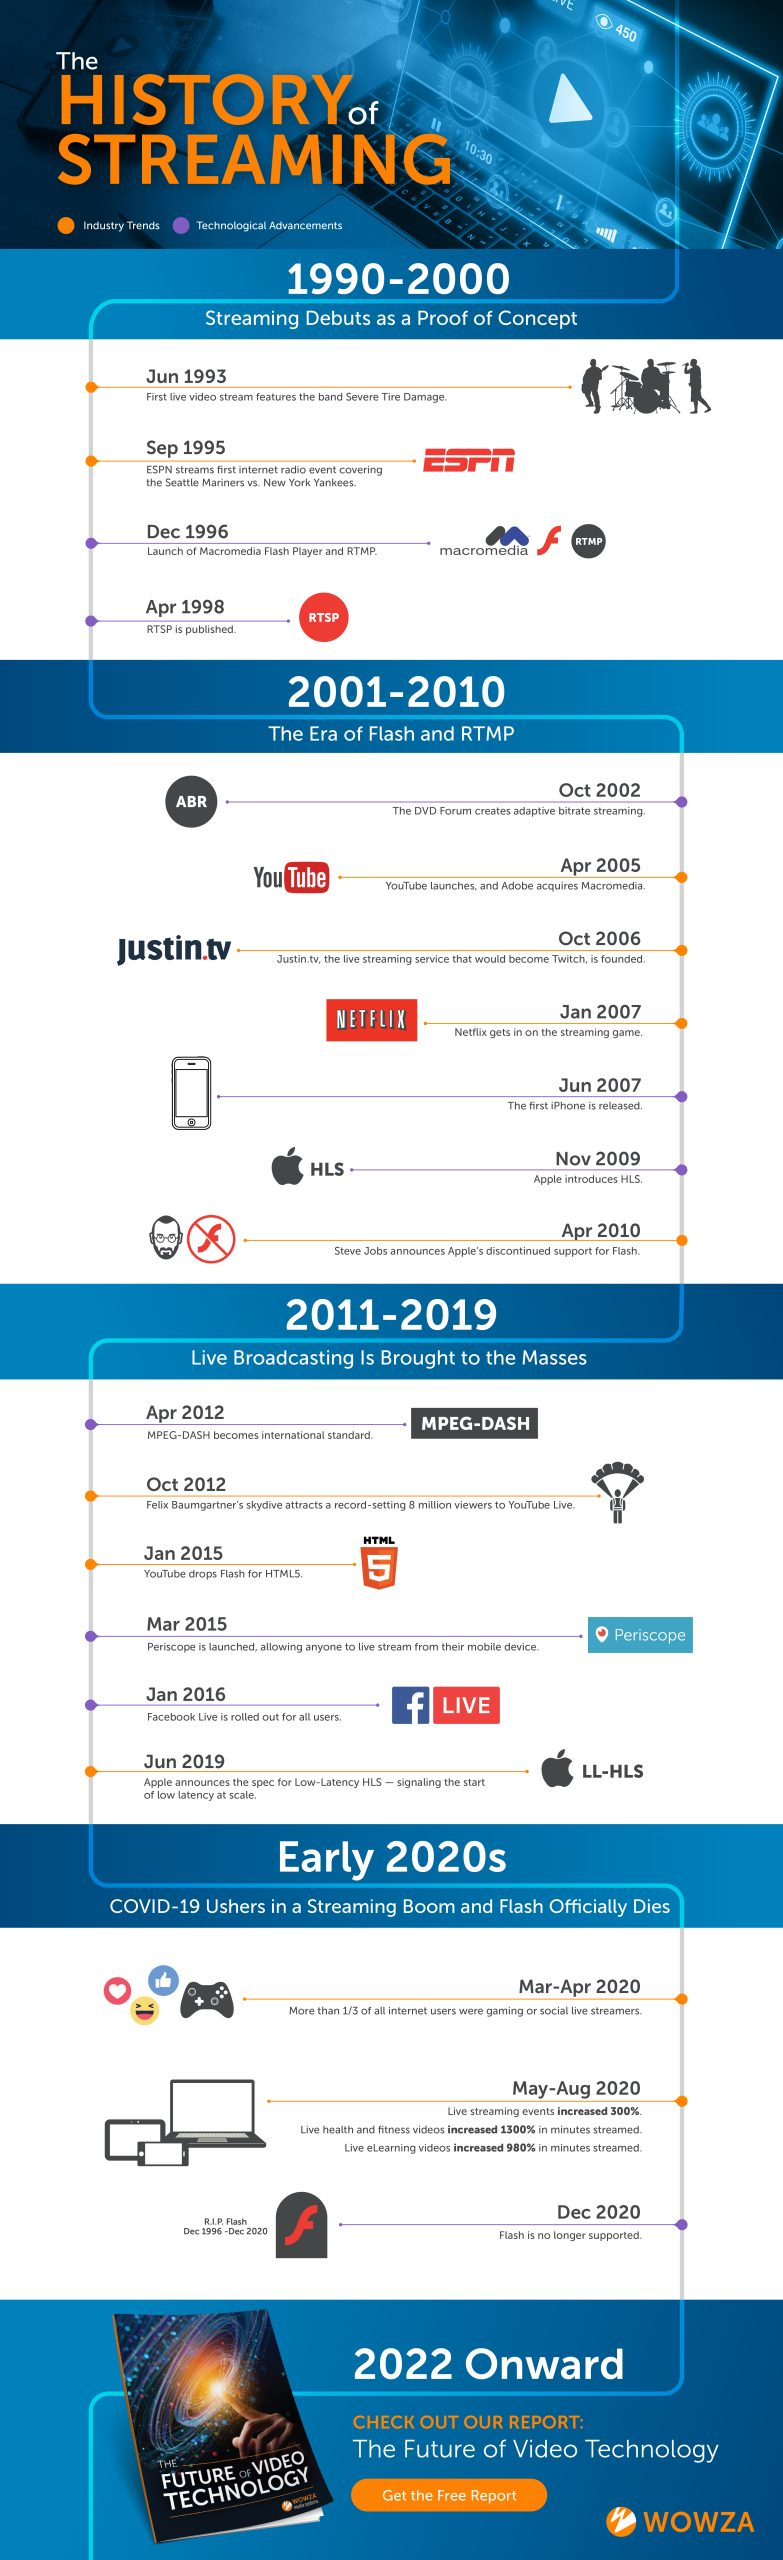 A timeline spanning from 1990 through 2001 detailing the biggest developments in video streaming.